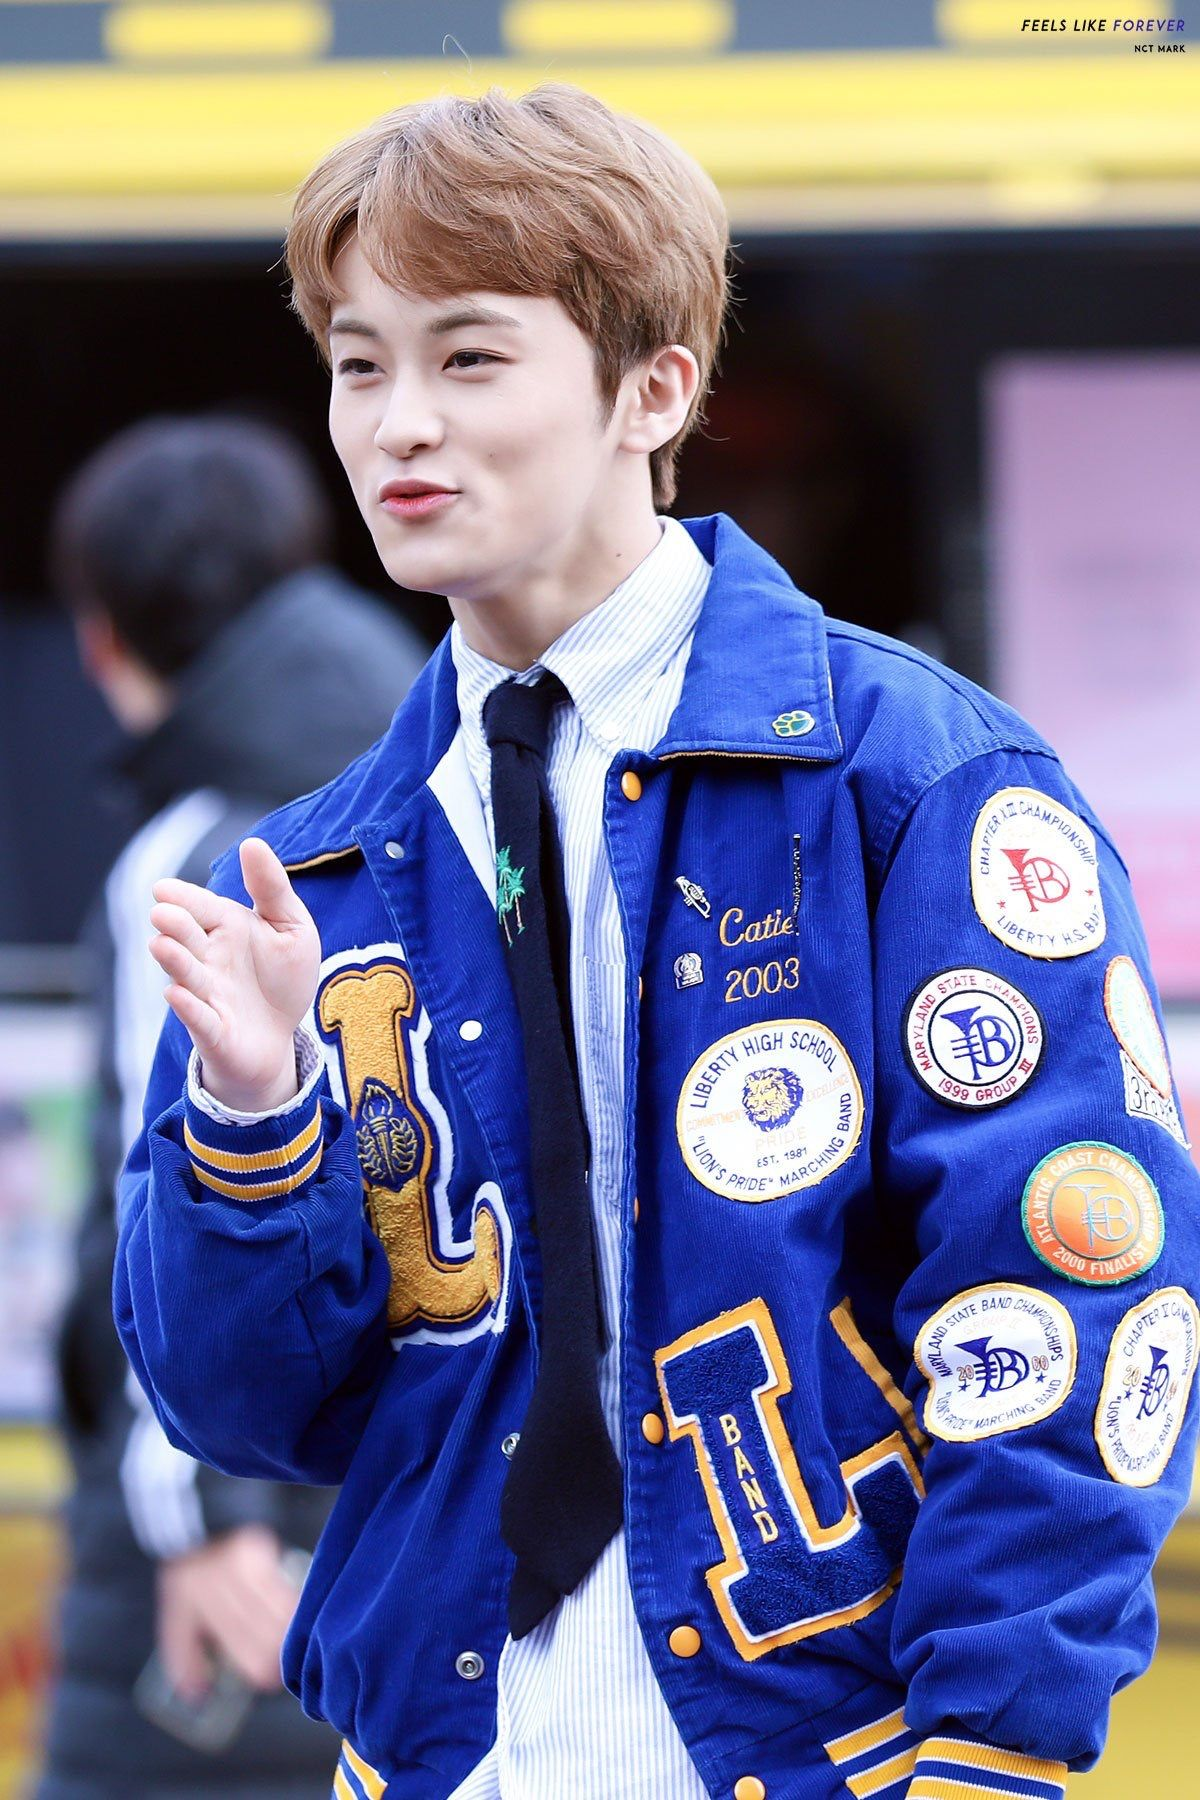 mark nct127 nctu nctdream nct Nct